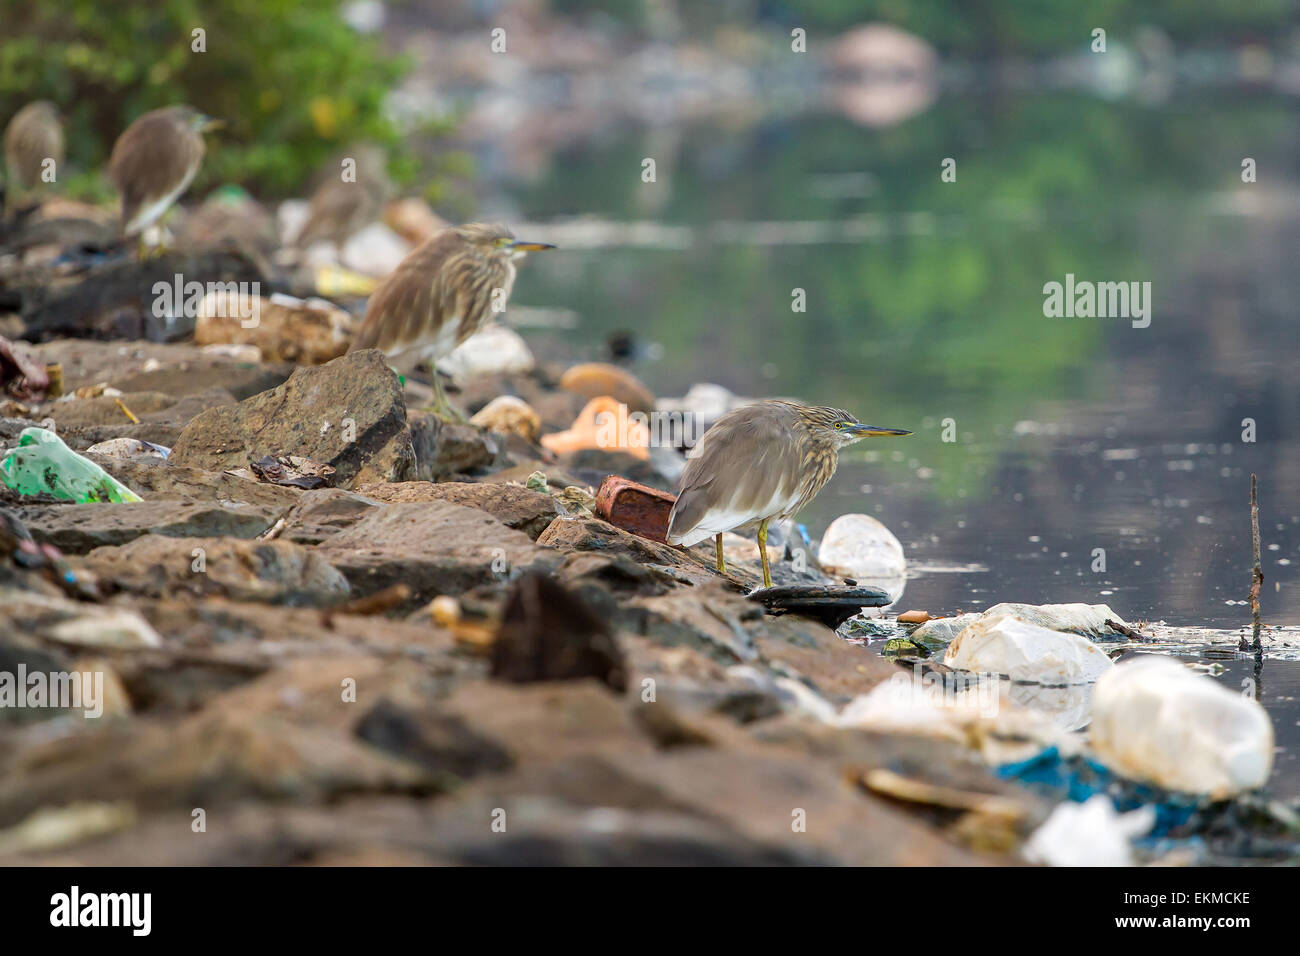 Birds on the bank of polluted river in India - Stock Image